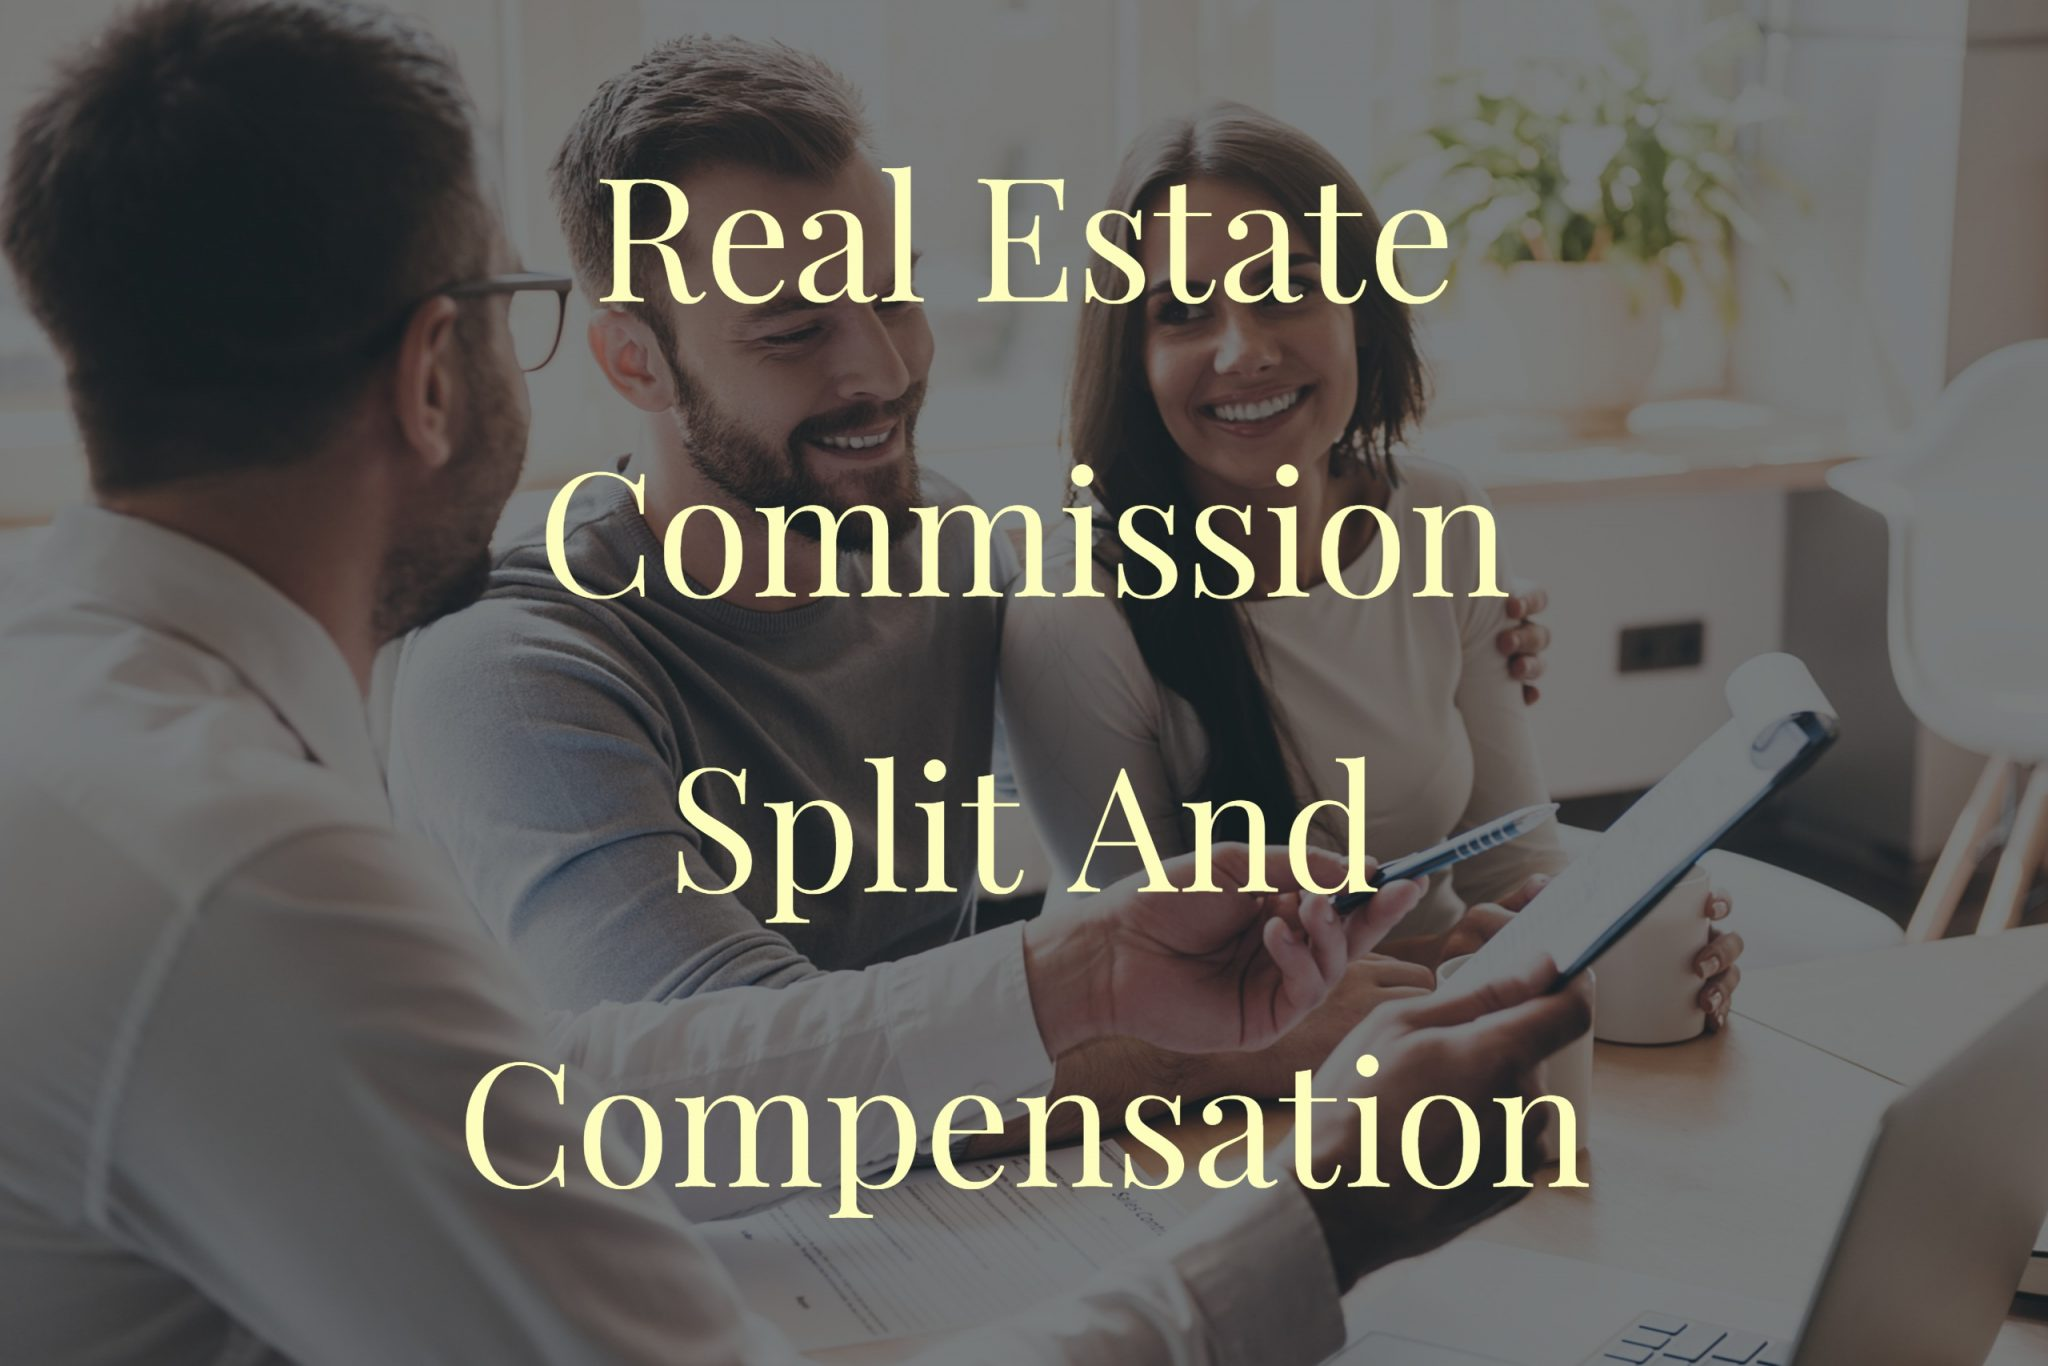 Best real estate company to work for best training for new real estate agents real estate agent coaching real estate agent training best real estate company in Los Angeles (13)